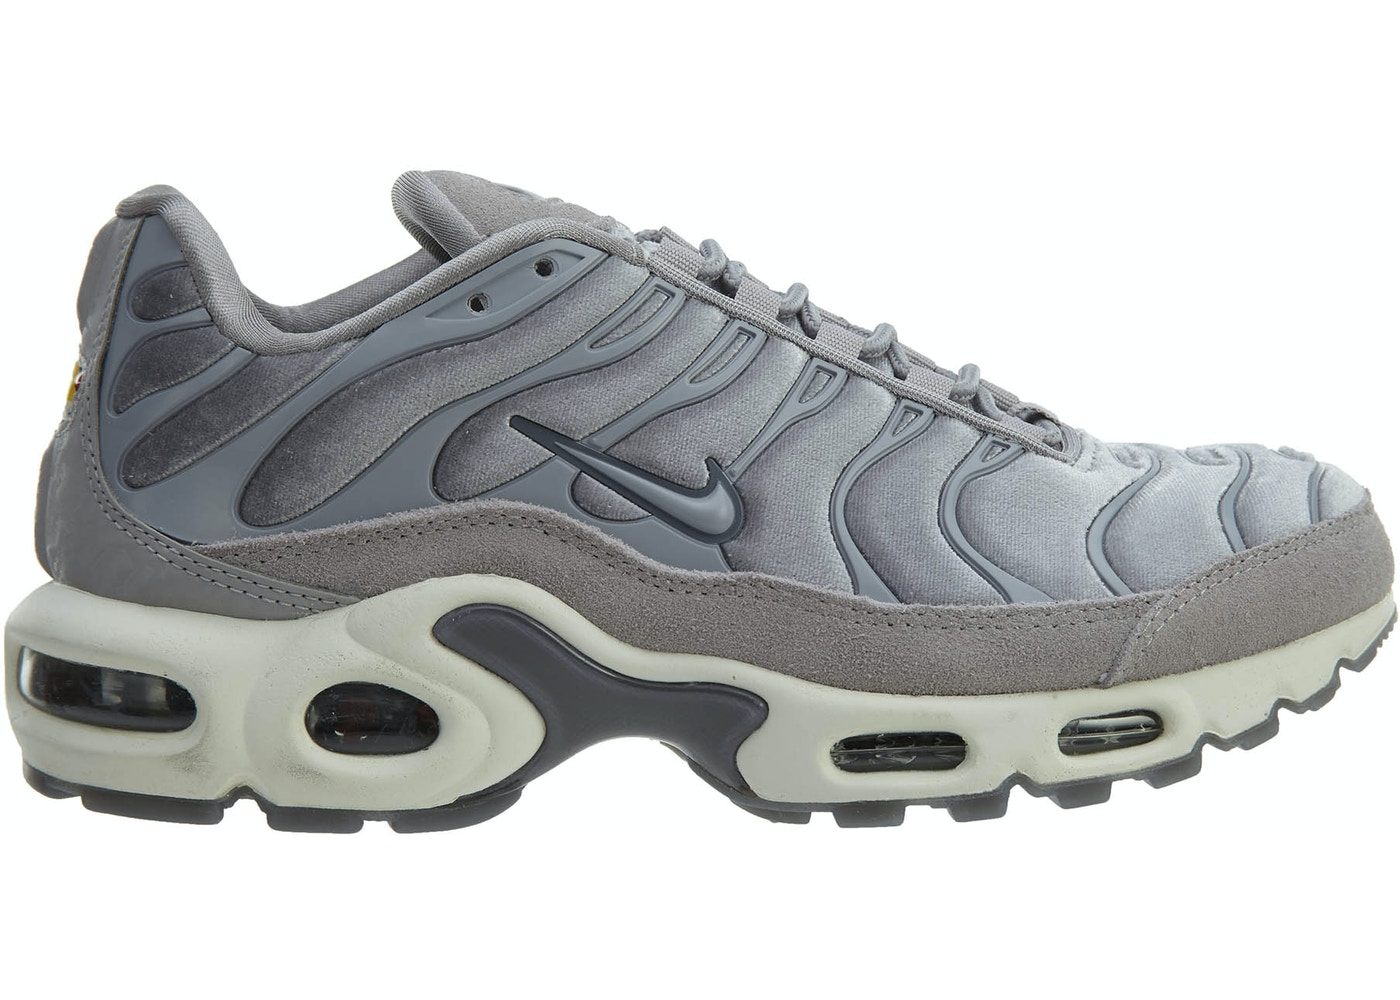 196110c9b5 Sell. or Ask. Size: 9.5W. View All Bids. Air Max Plus Lx Gunsmoke  Atmosphere Grey ...